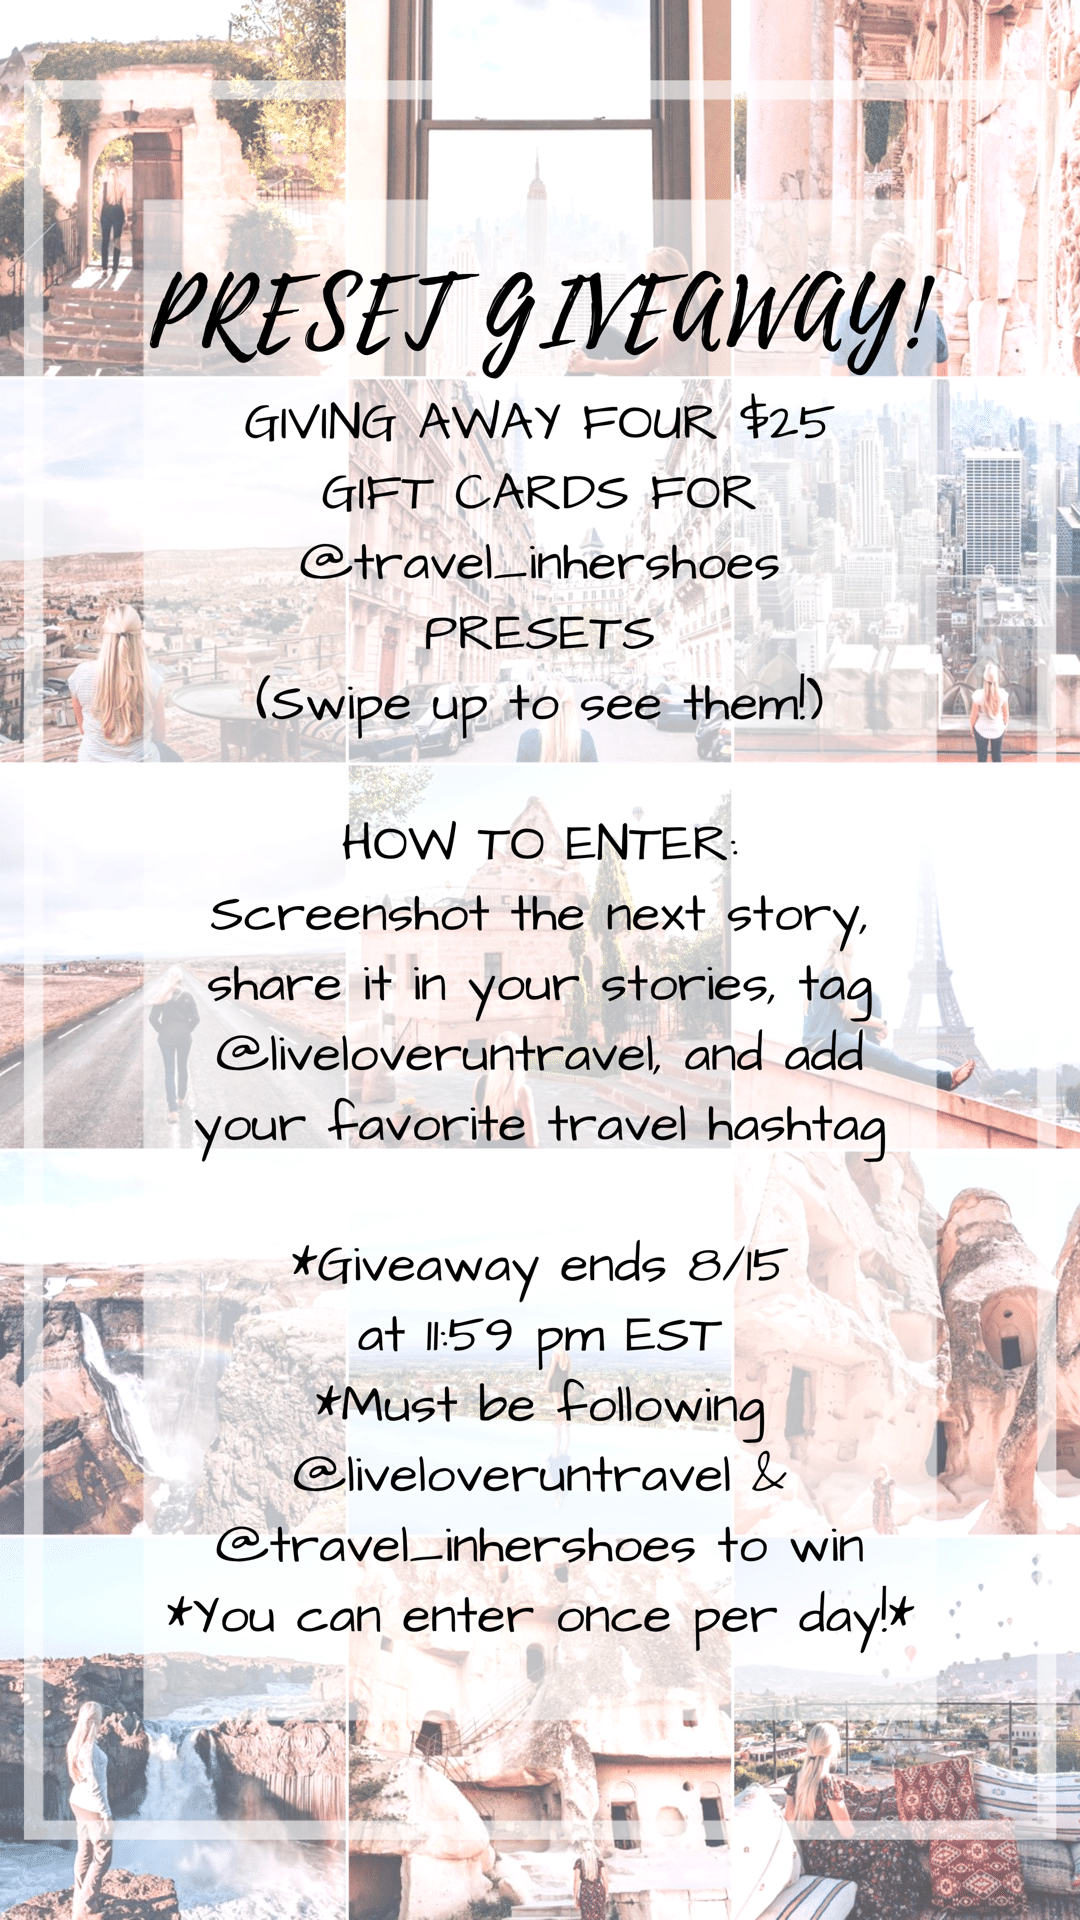 Example of a personal giveaway on Instagram as a way to give back. Learn more about growing an engaged following authentically on Instagram on the full blog post.